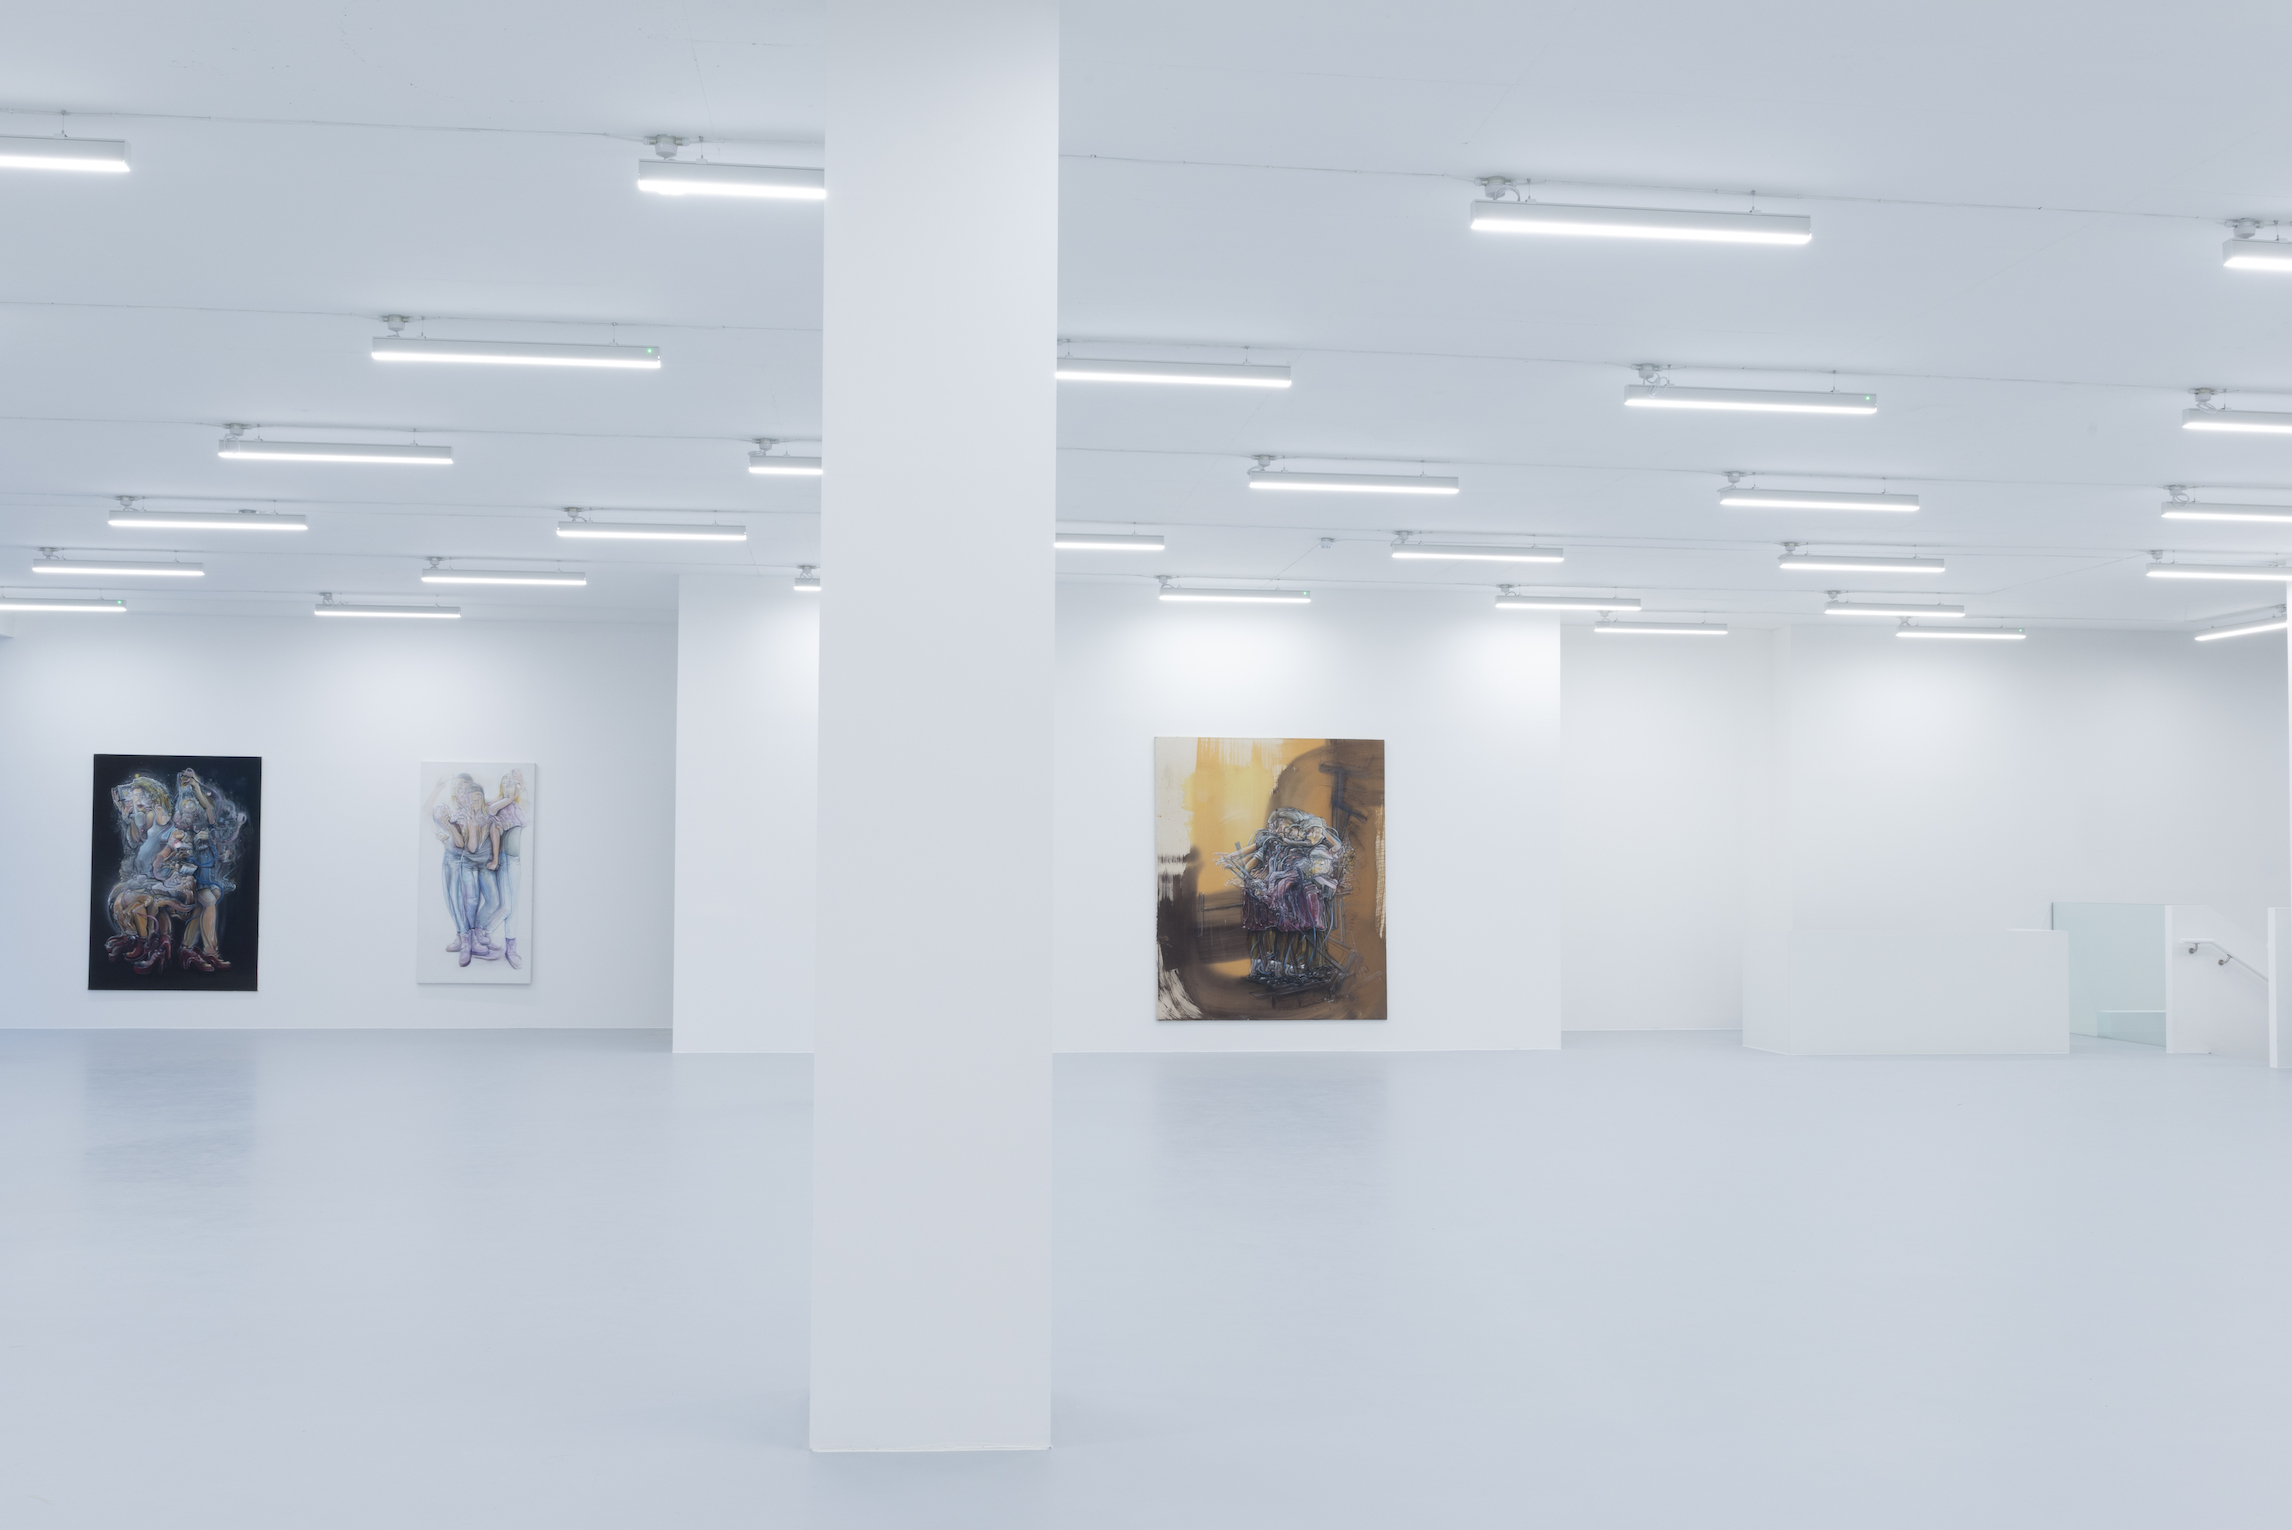 Installation view 3, Pascal Sender at Saatchi Yates, 2020, Courtesy of the artist and Saatchi Yates